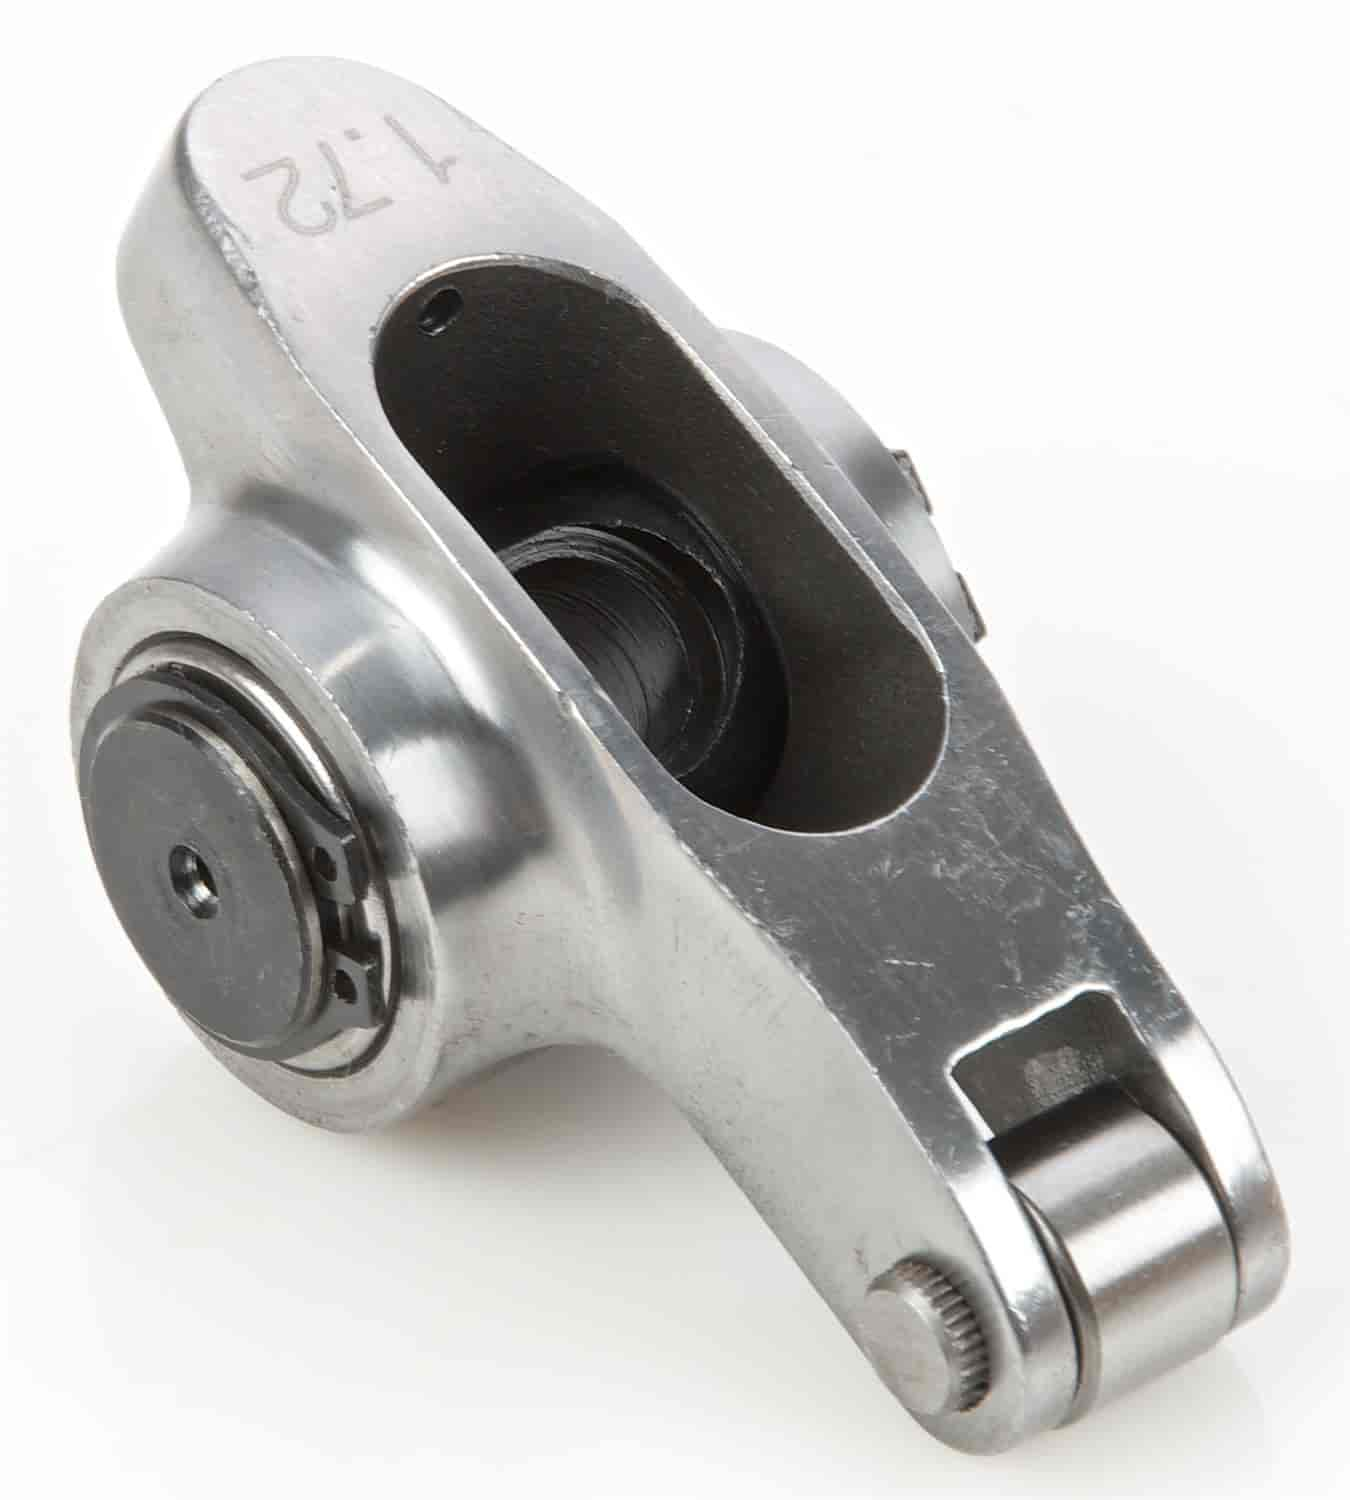 JEGS 20910: Stainless Steel Rocker Arms Chevy 396-454 V8